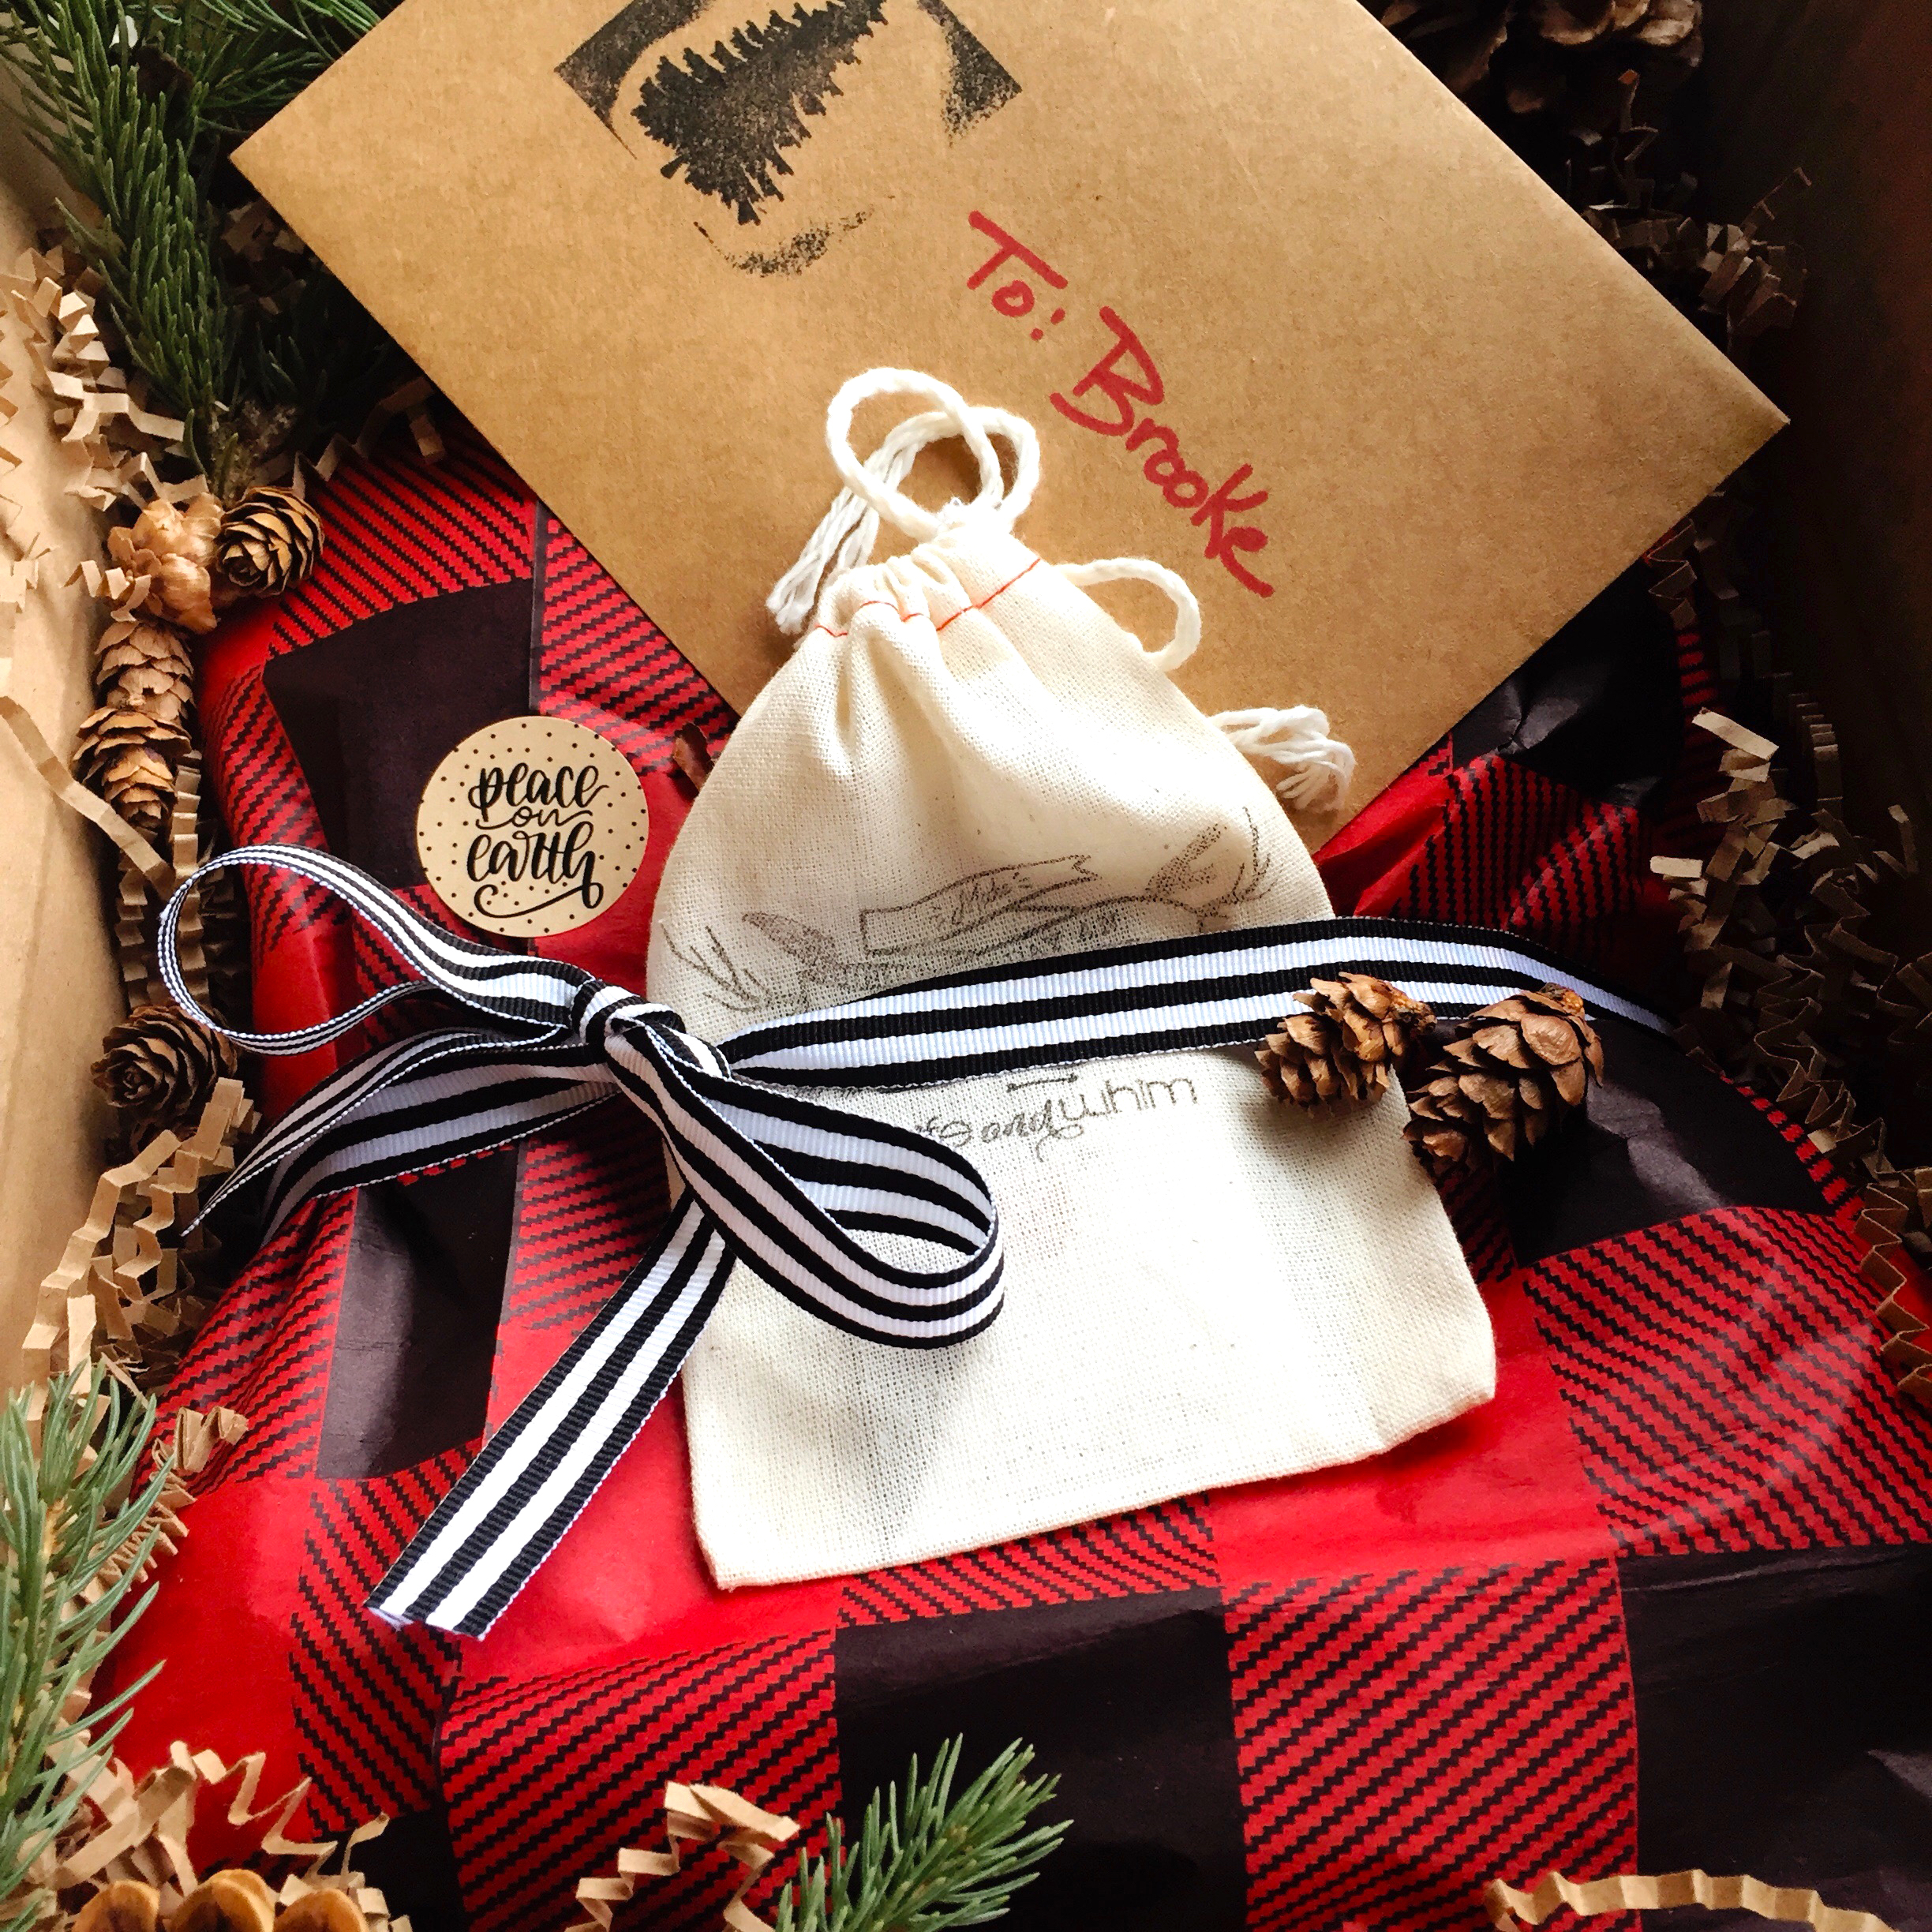 FREE Gift Wrapping - Each online purchase comes wrapped for free in our up-north style, plus you can personalize your gift with a custom note!